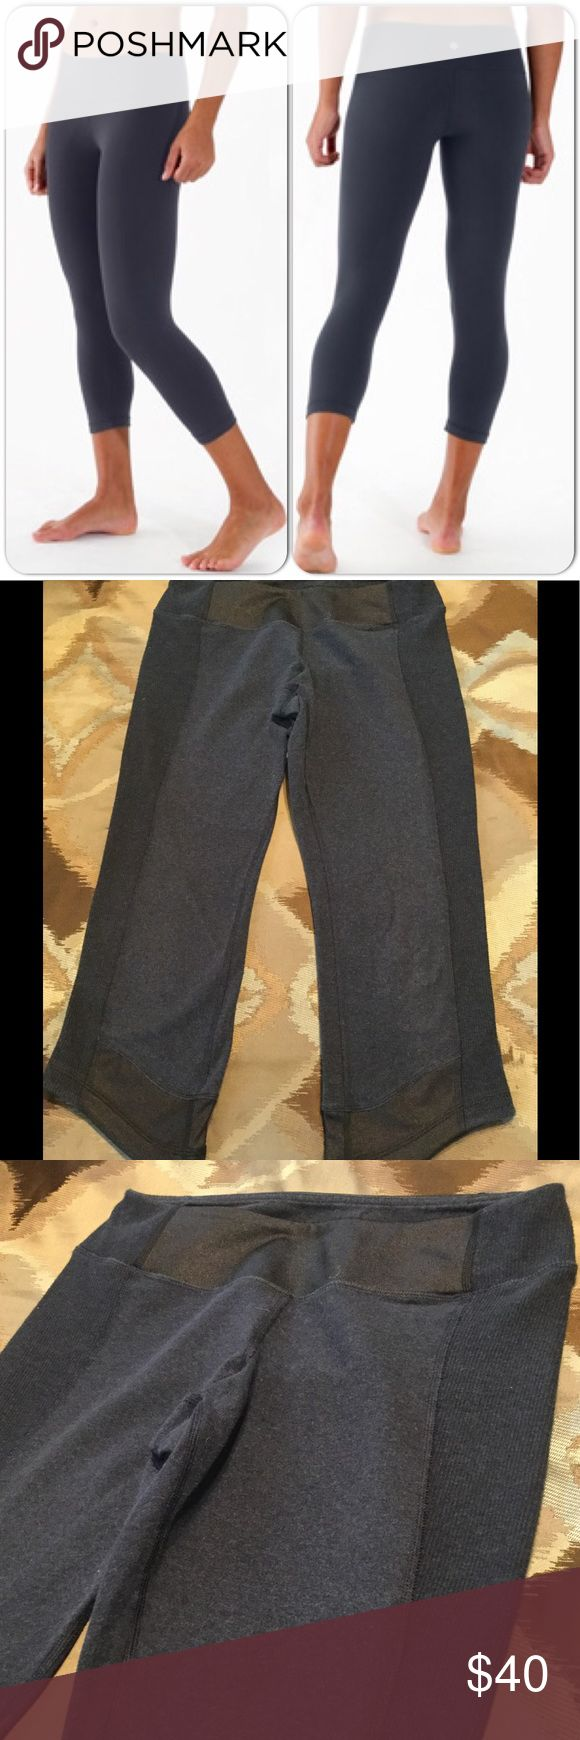 GET THE LOOK - LULULEMON CAPRI PANTS! Dark blue (almost gray looking) cotton and ribbed cotton combo on these LULUs.  A black polyester band at top and also accents the bottom leg. Angled at the bottom edge.  Size tag is gone but size 6 pants.  Good condition and ready for wear.  Actual pants being sold in pics 2-8.  Pic 1 is of a similar looking item. lululemon athletica Pants